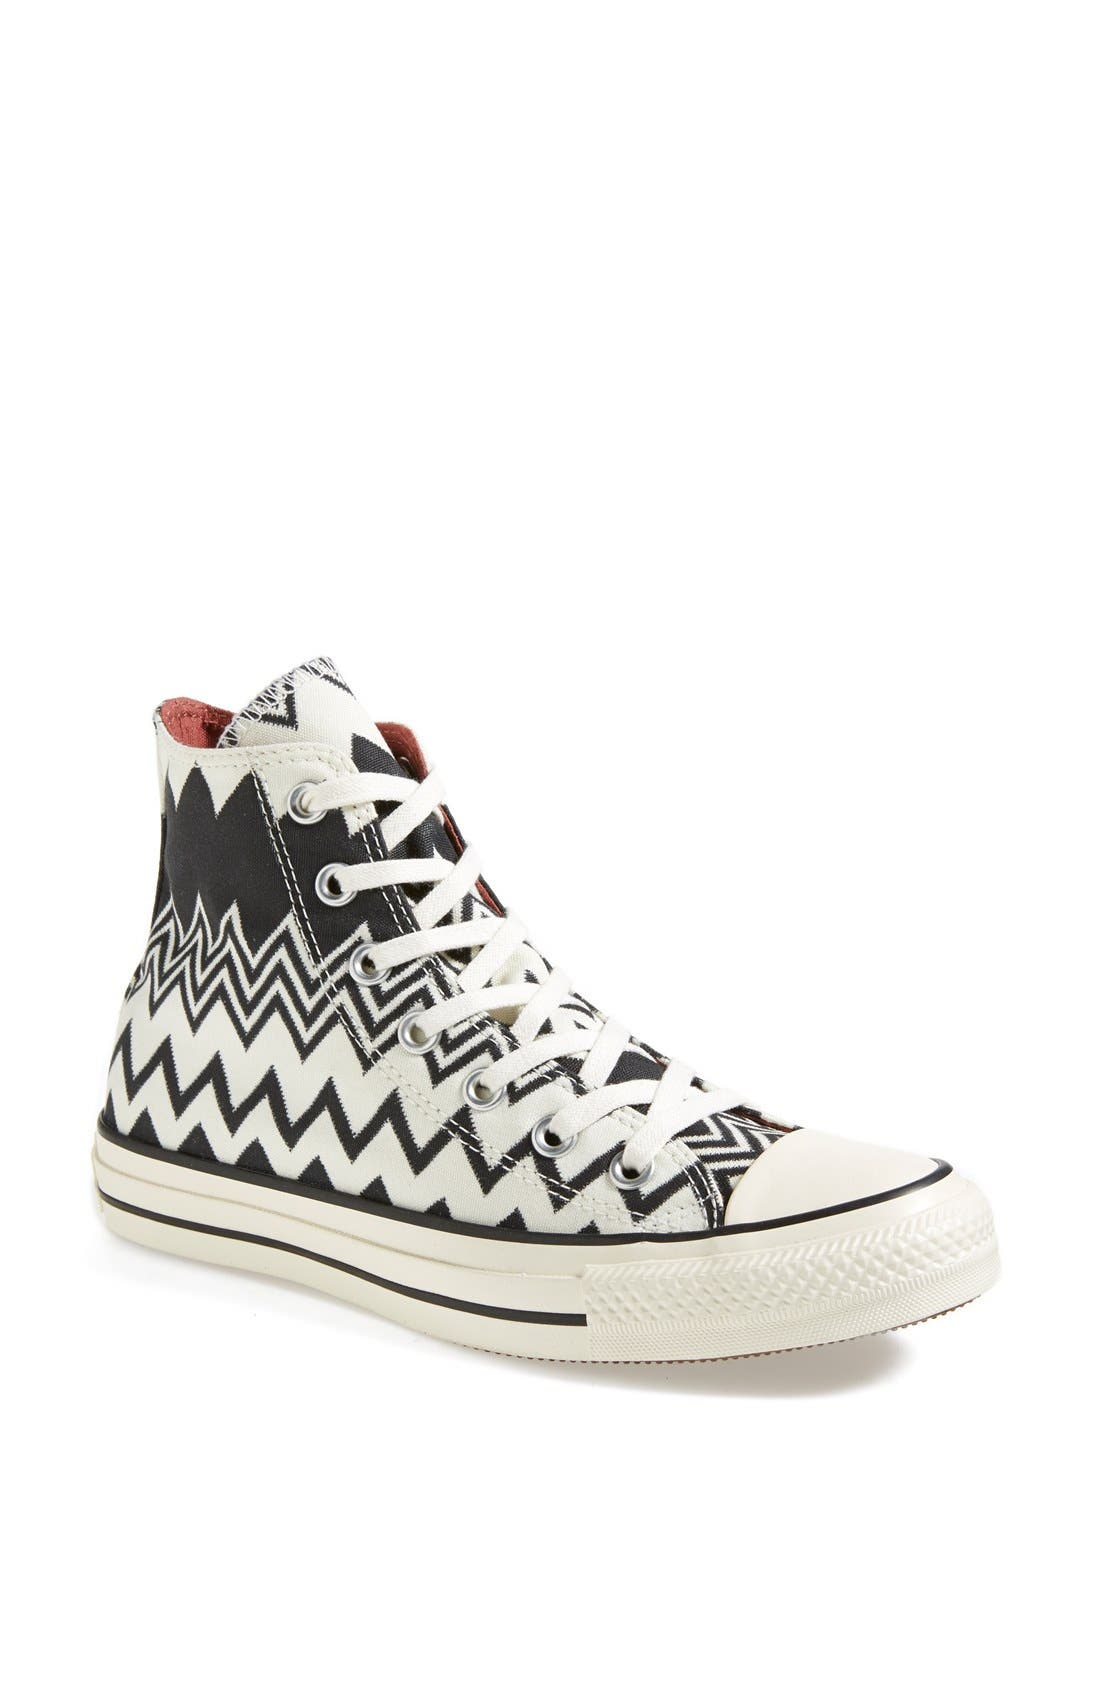 Alternate Image 1 Selected - Converse x Missoni Chuck Taylor® All Star® High Top Sneaker (Women)